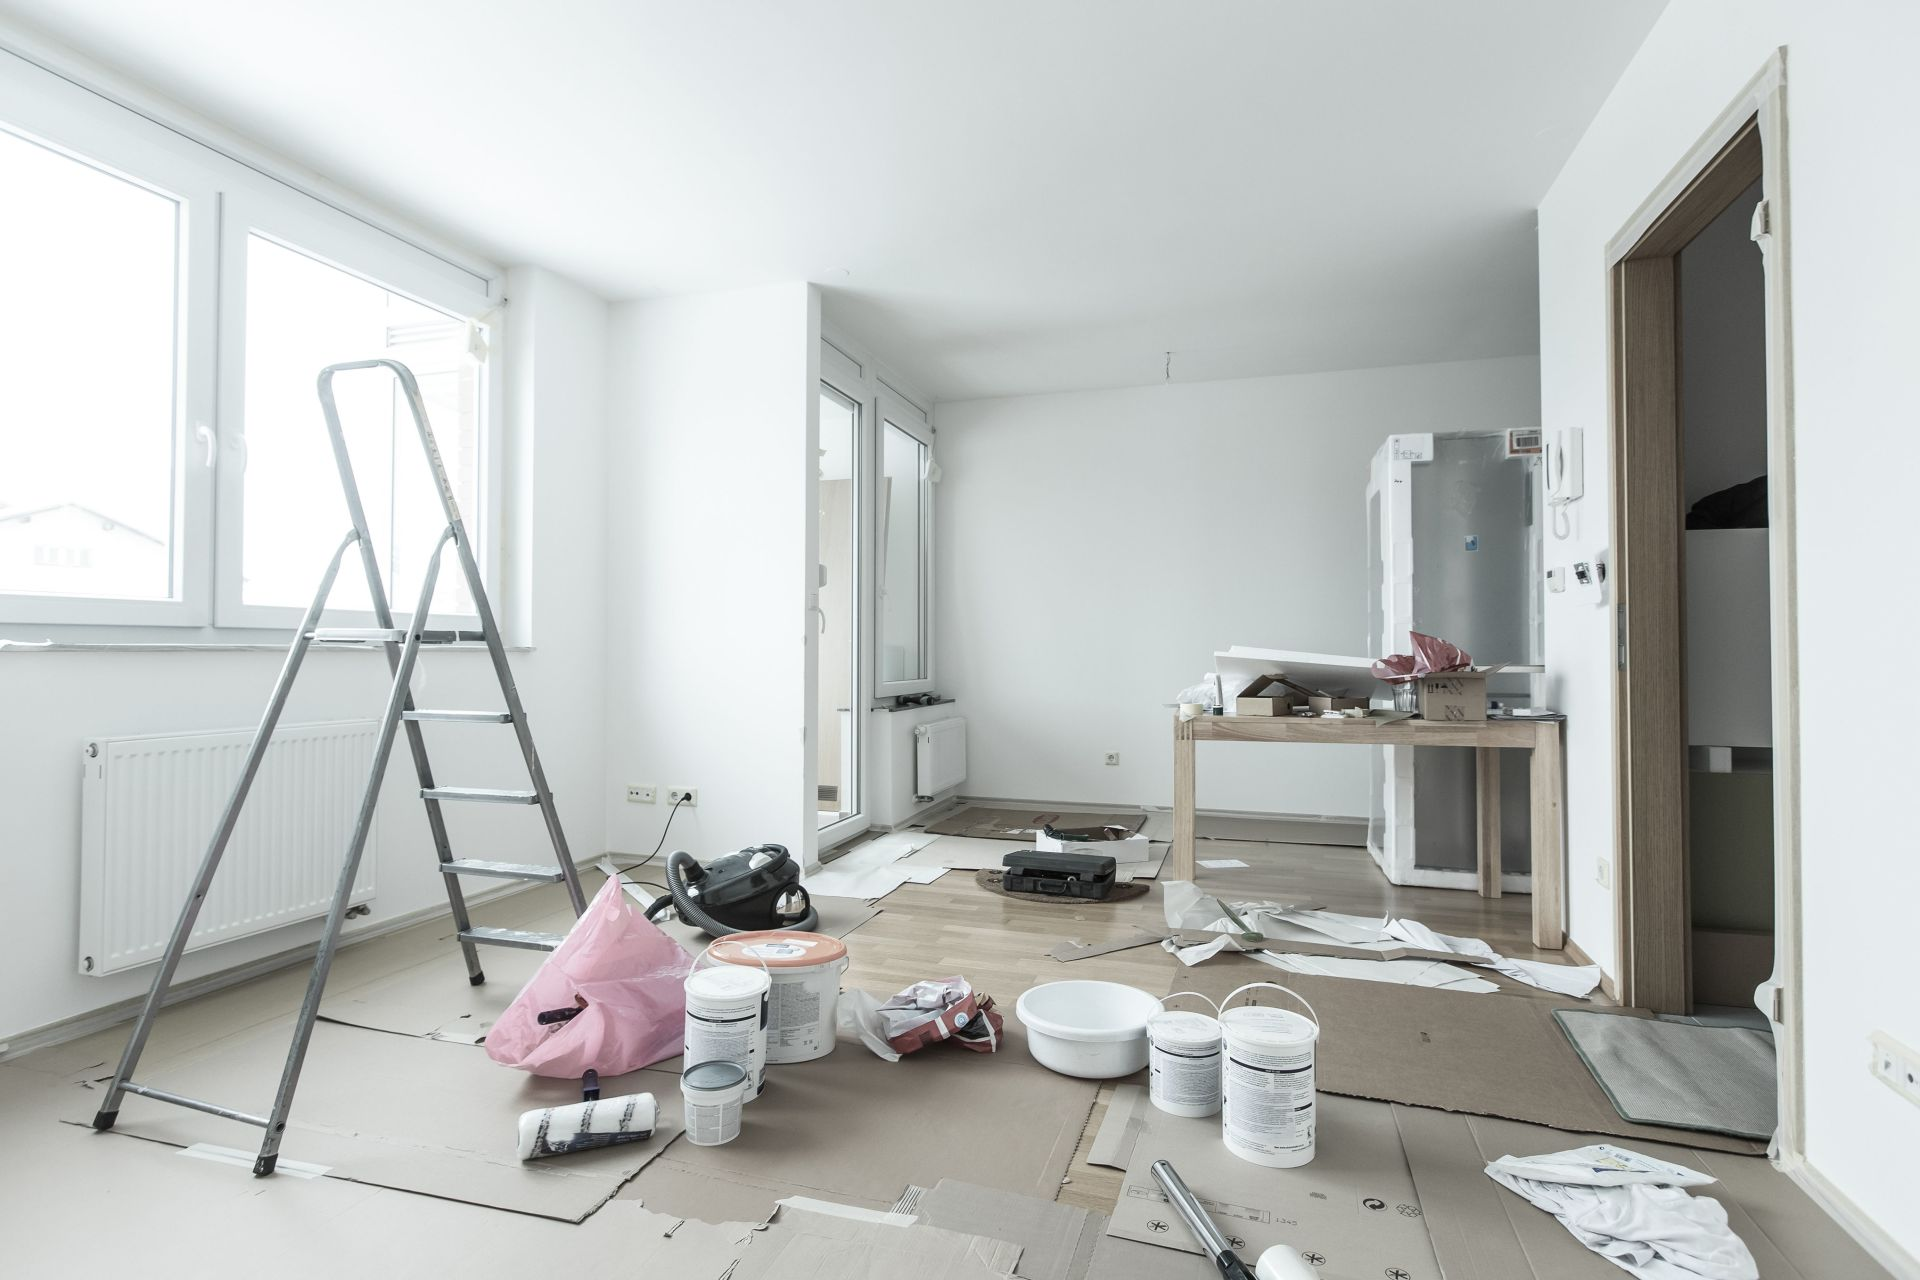 How to Increase Property Value in 2019: Top 10 Home Renovations